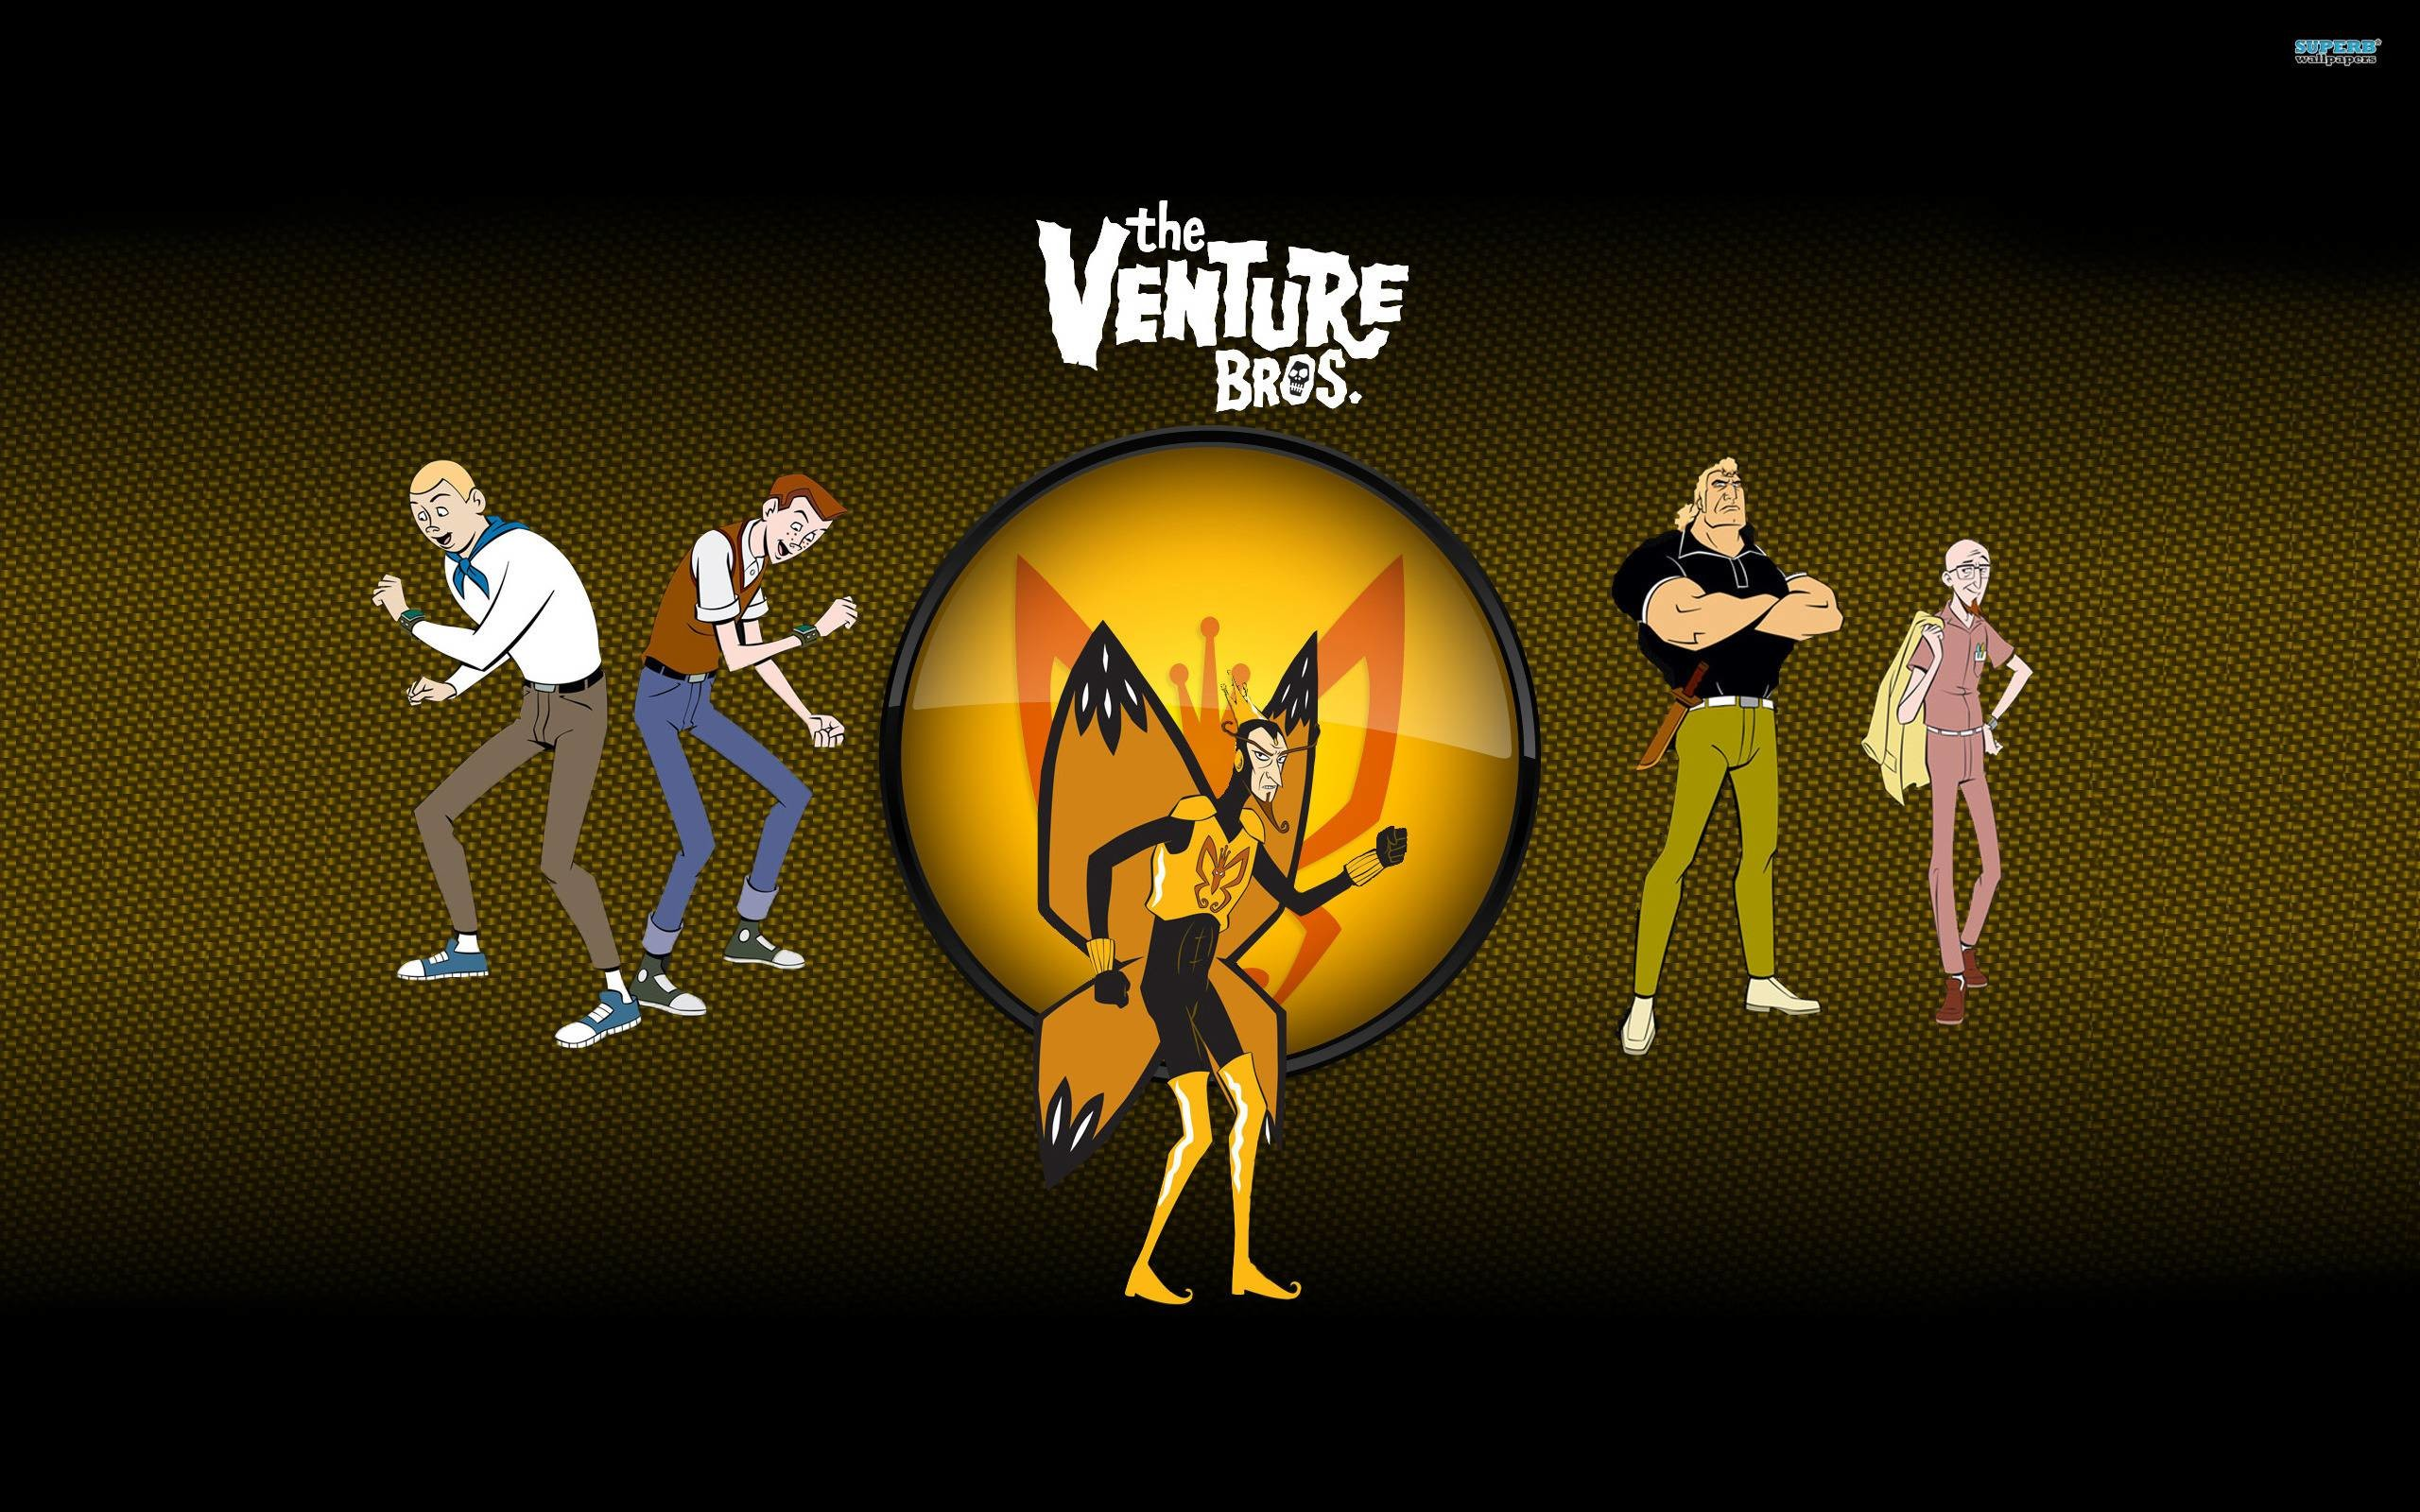 2560x1600 The Venture Bros. wallpaper - Cartoon wallpapers - #11515